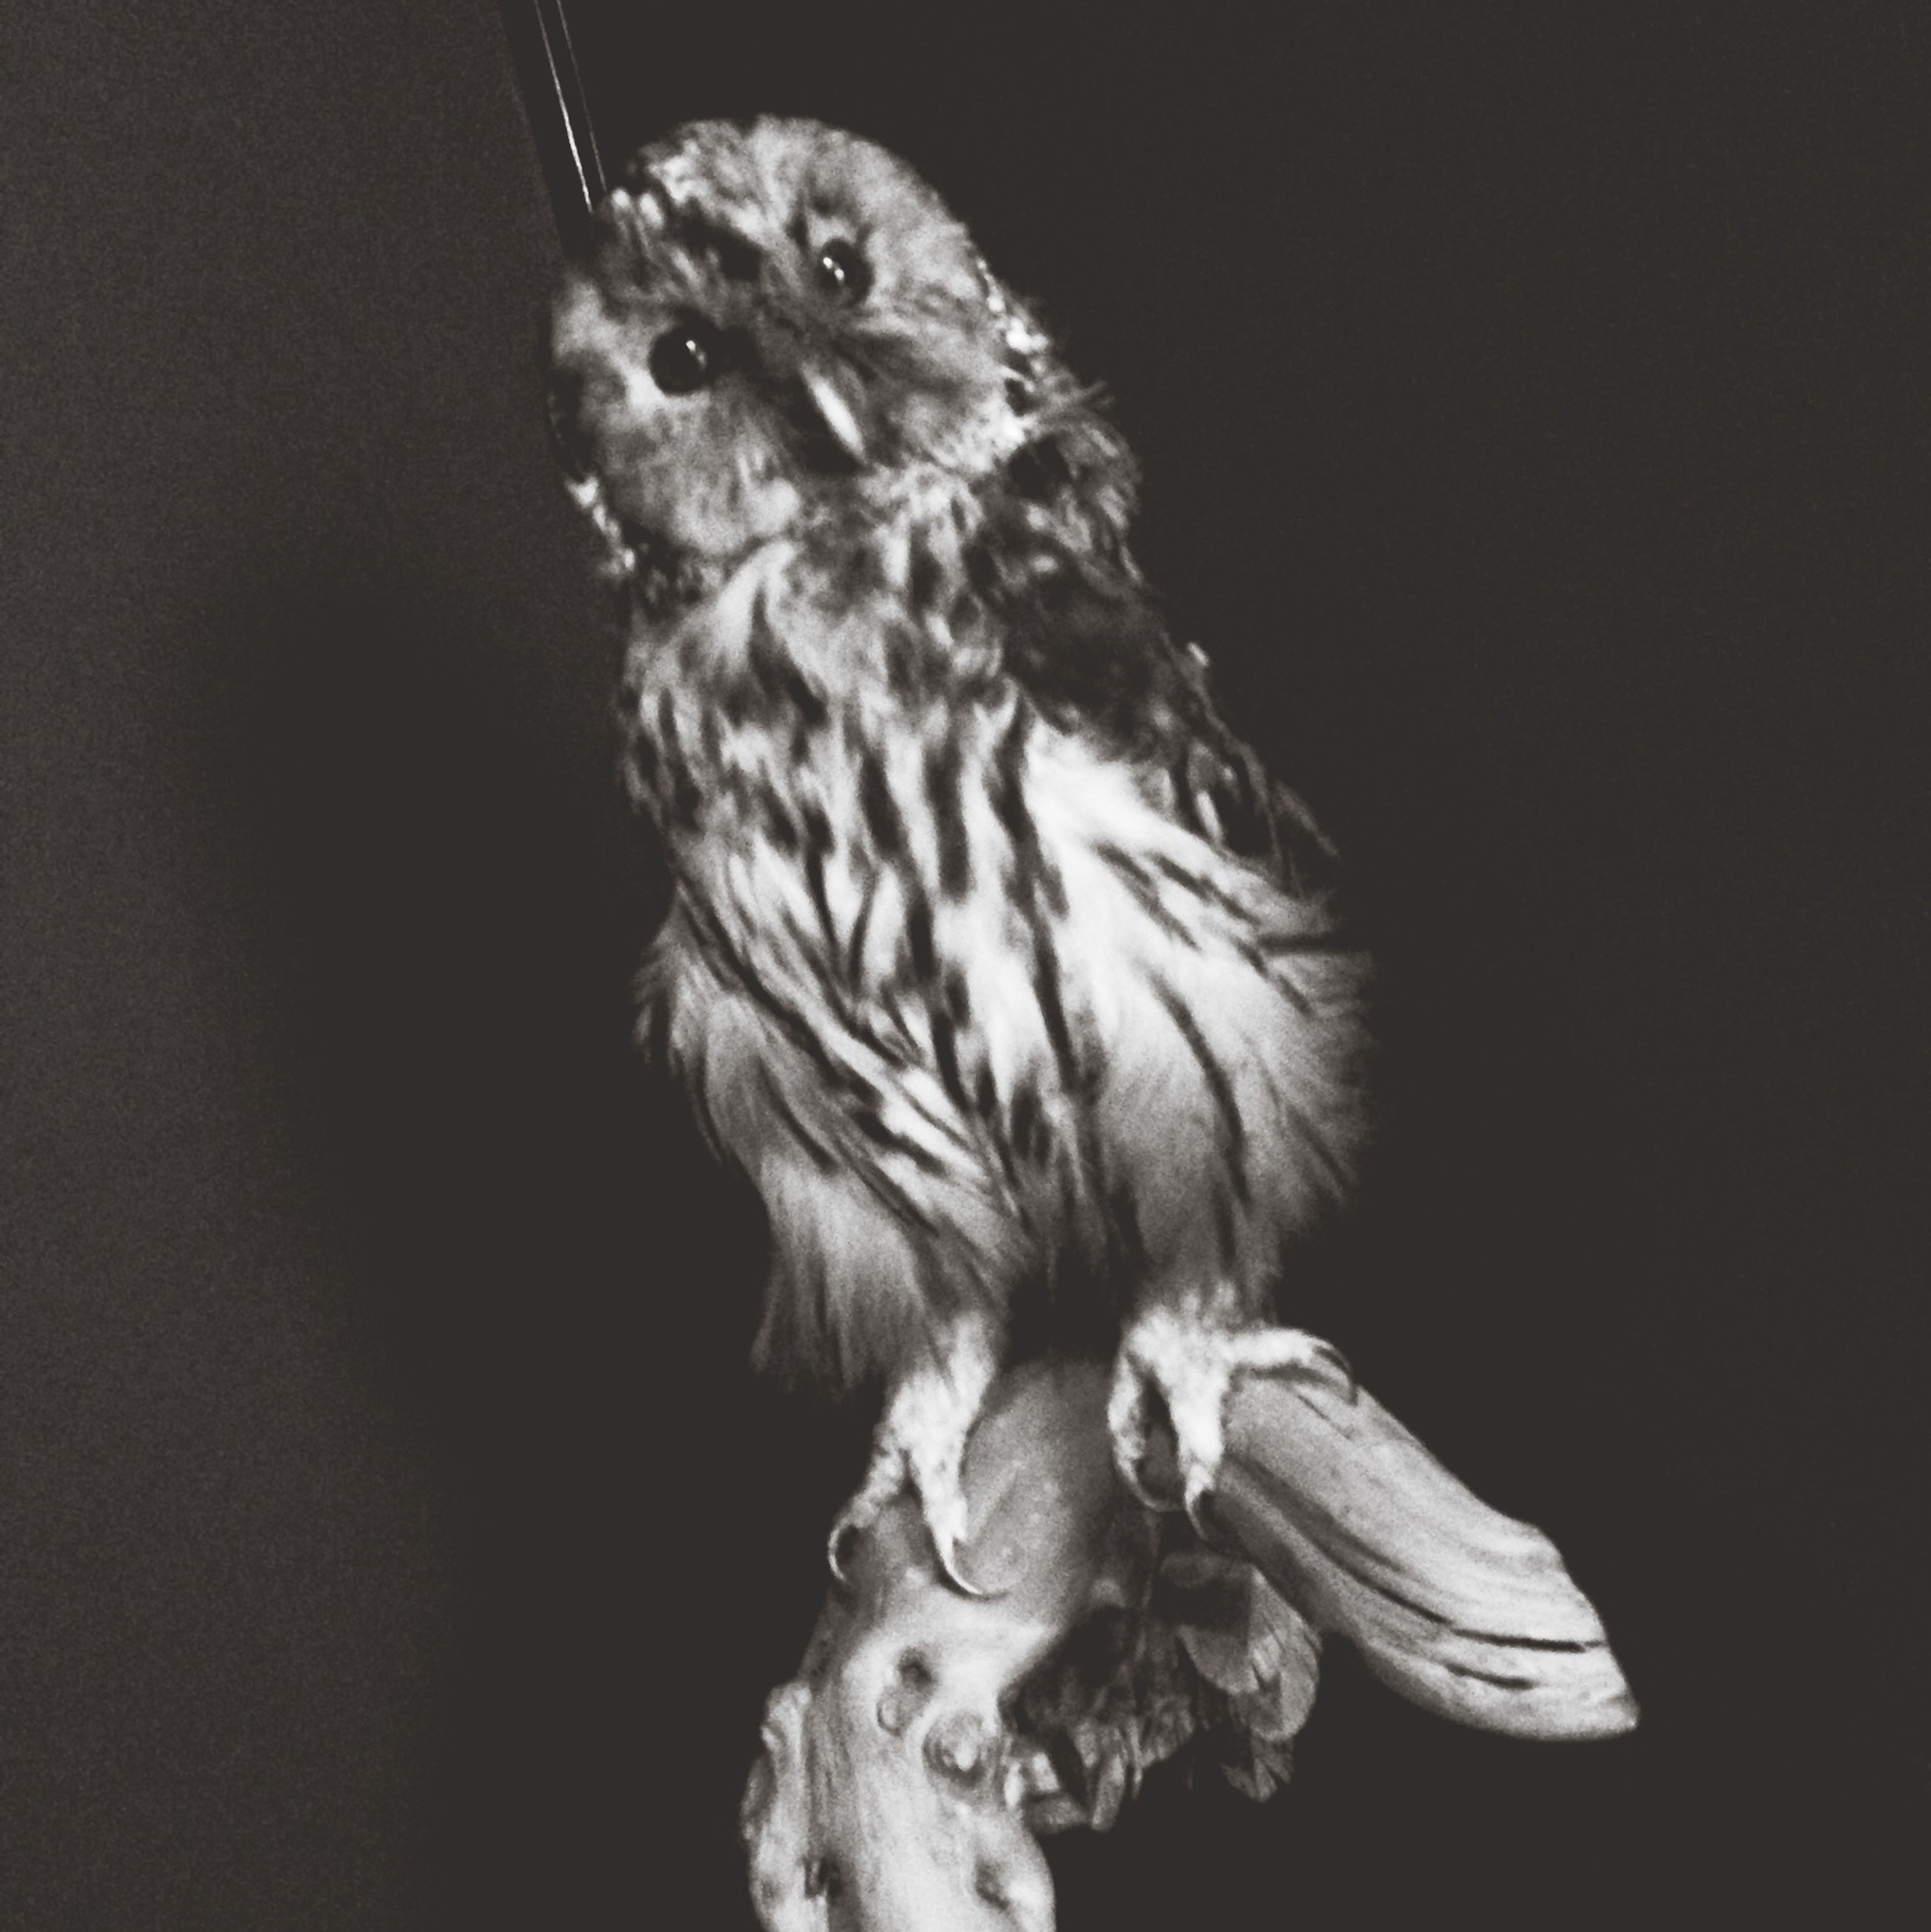 animal themes, one animal, animals in the wild, wildlife, bird, bird of prey, close-up, perching, full length, focus on foreground, no people, zoology, nature, looking away, copy space, beak, side view, animal head, studio shot, owl